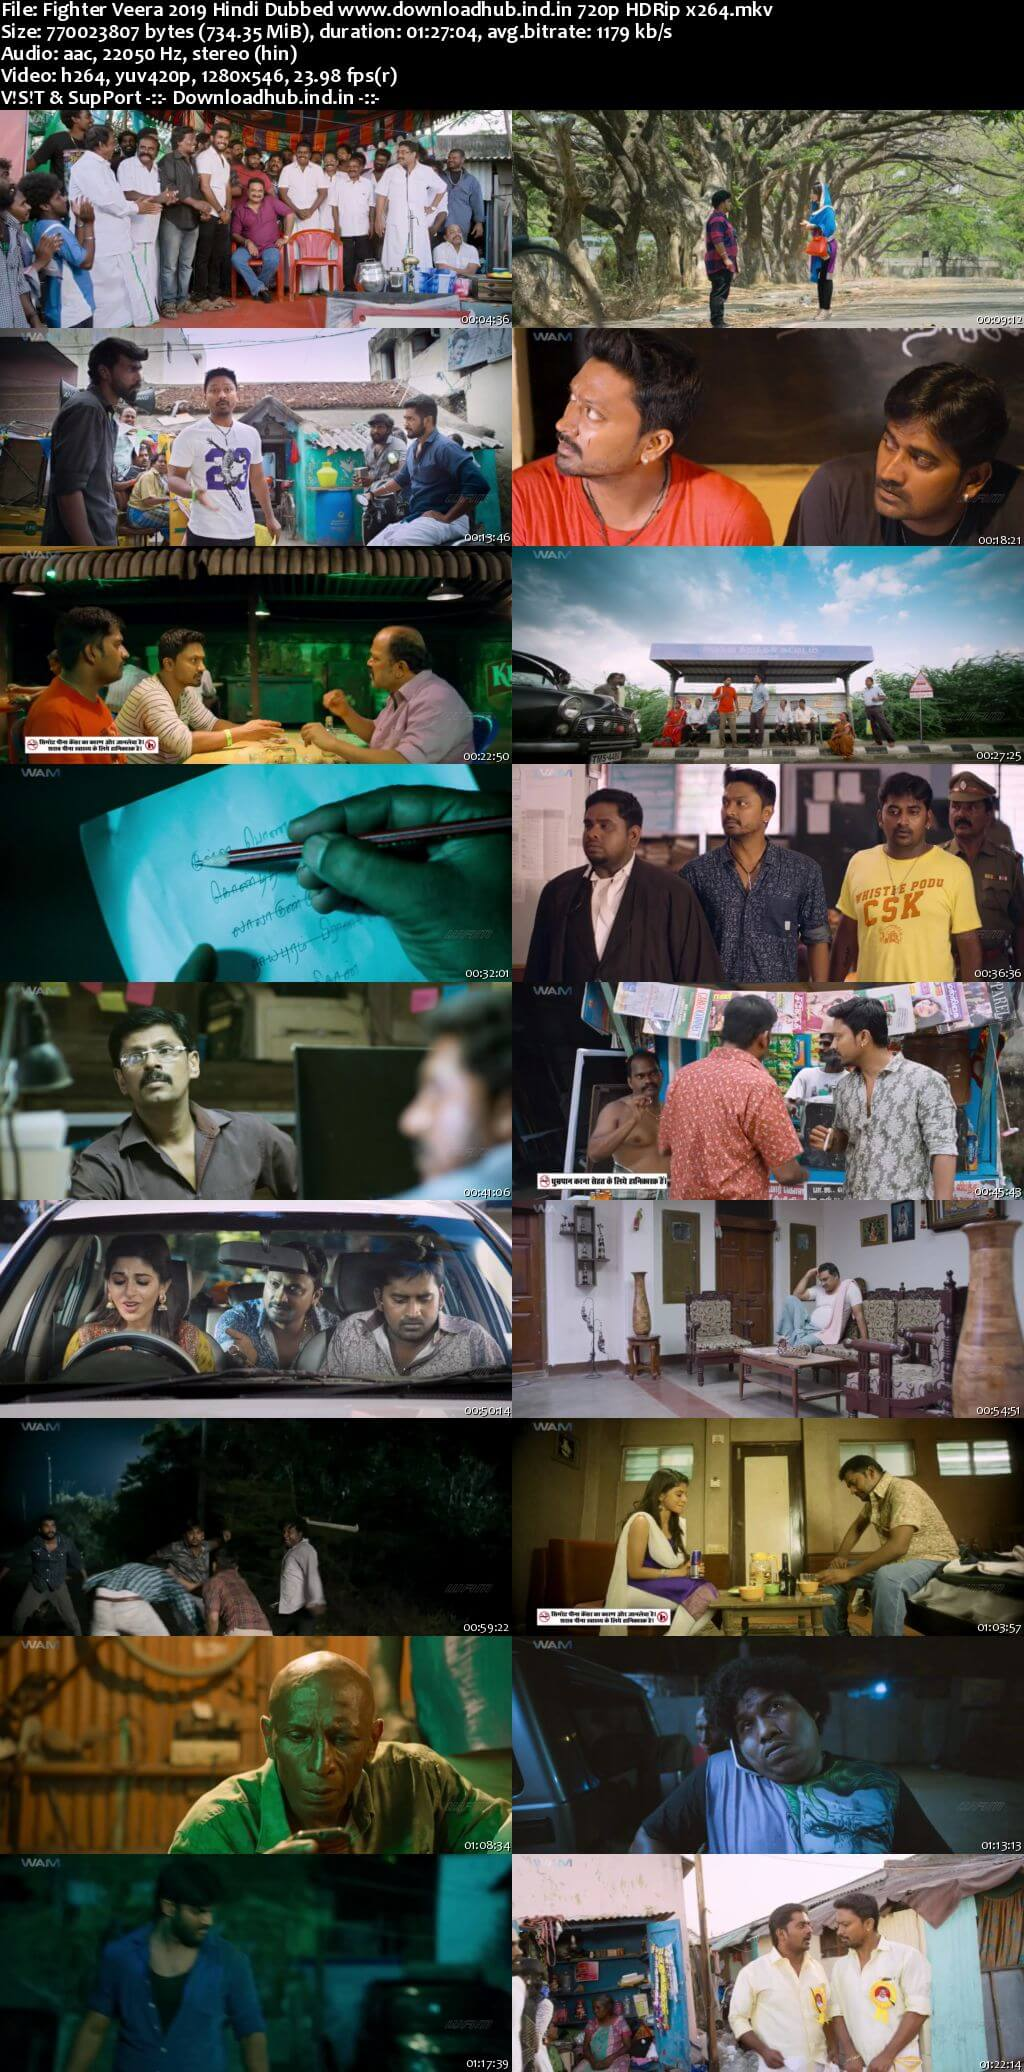 Fighter Veera 2019 Hindi Dubbed 720p HDRip x264